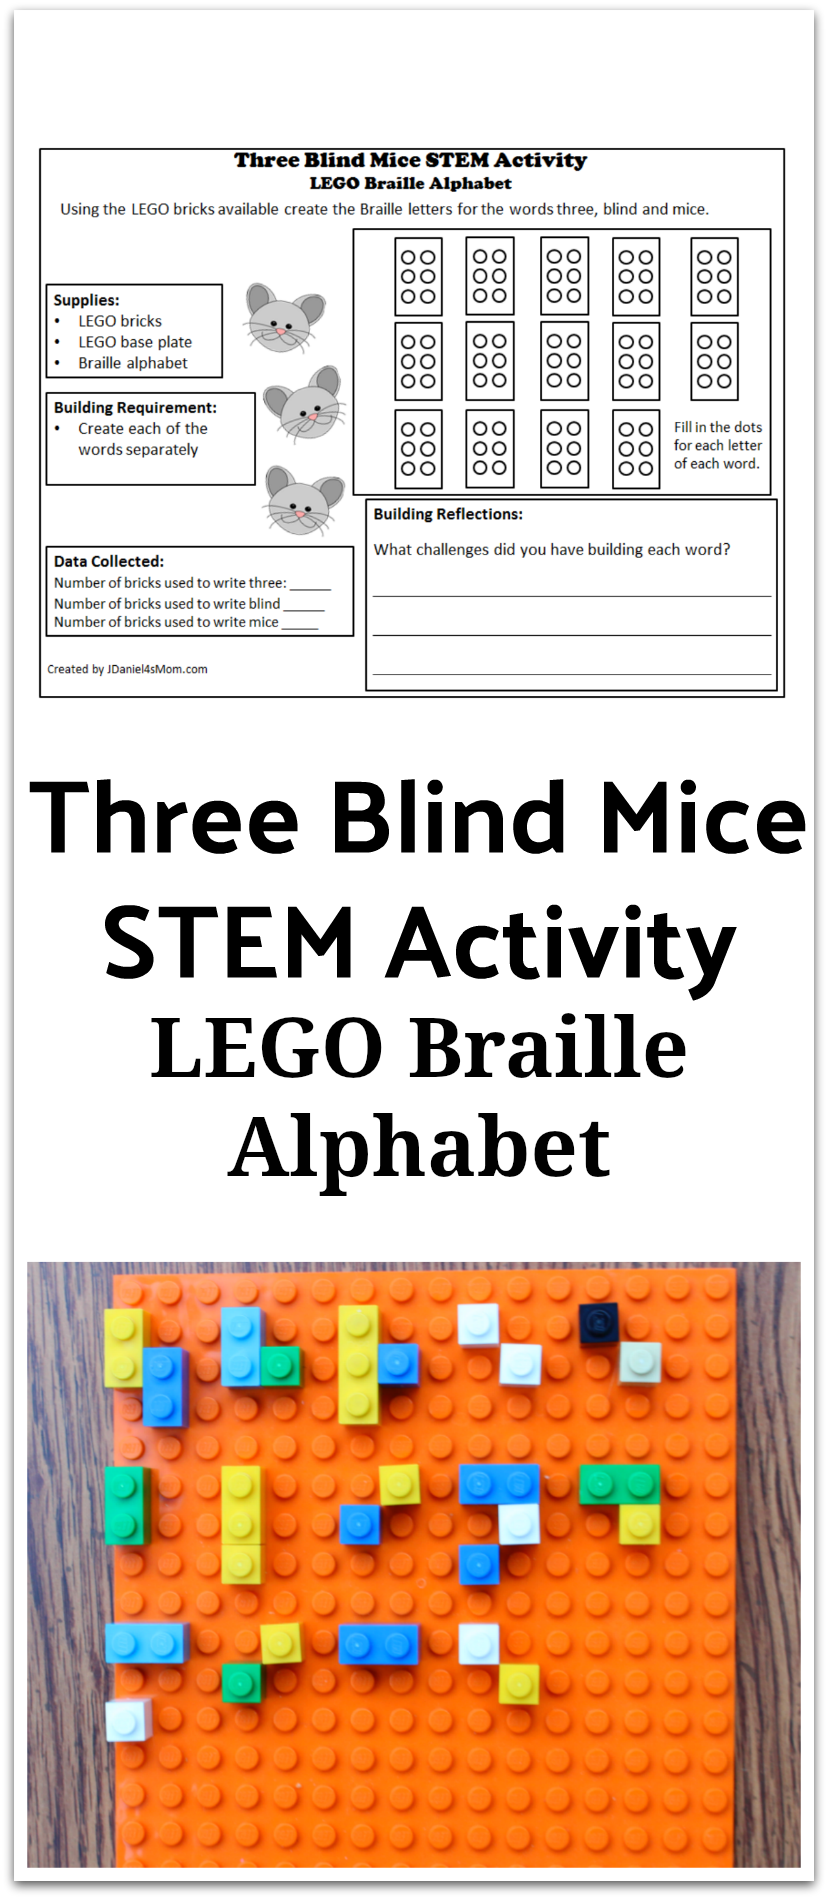 picture relating to Printable Braille Alphabet named LEGO Braille Alphabet - A few Blind Mice STEM Recreation